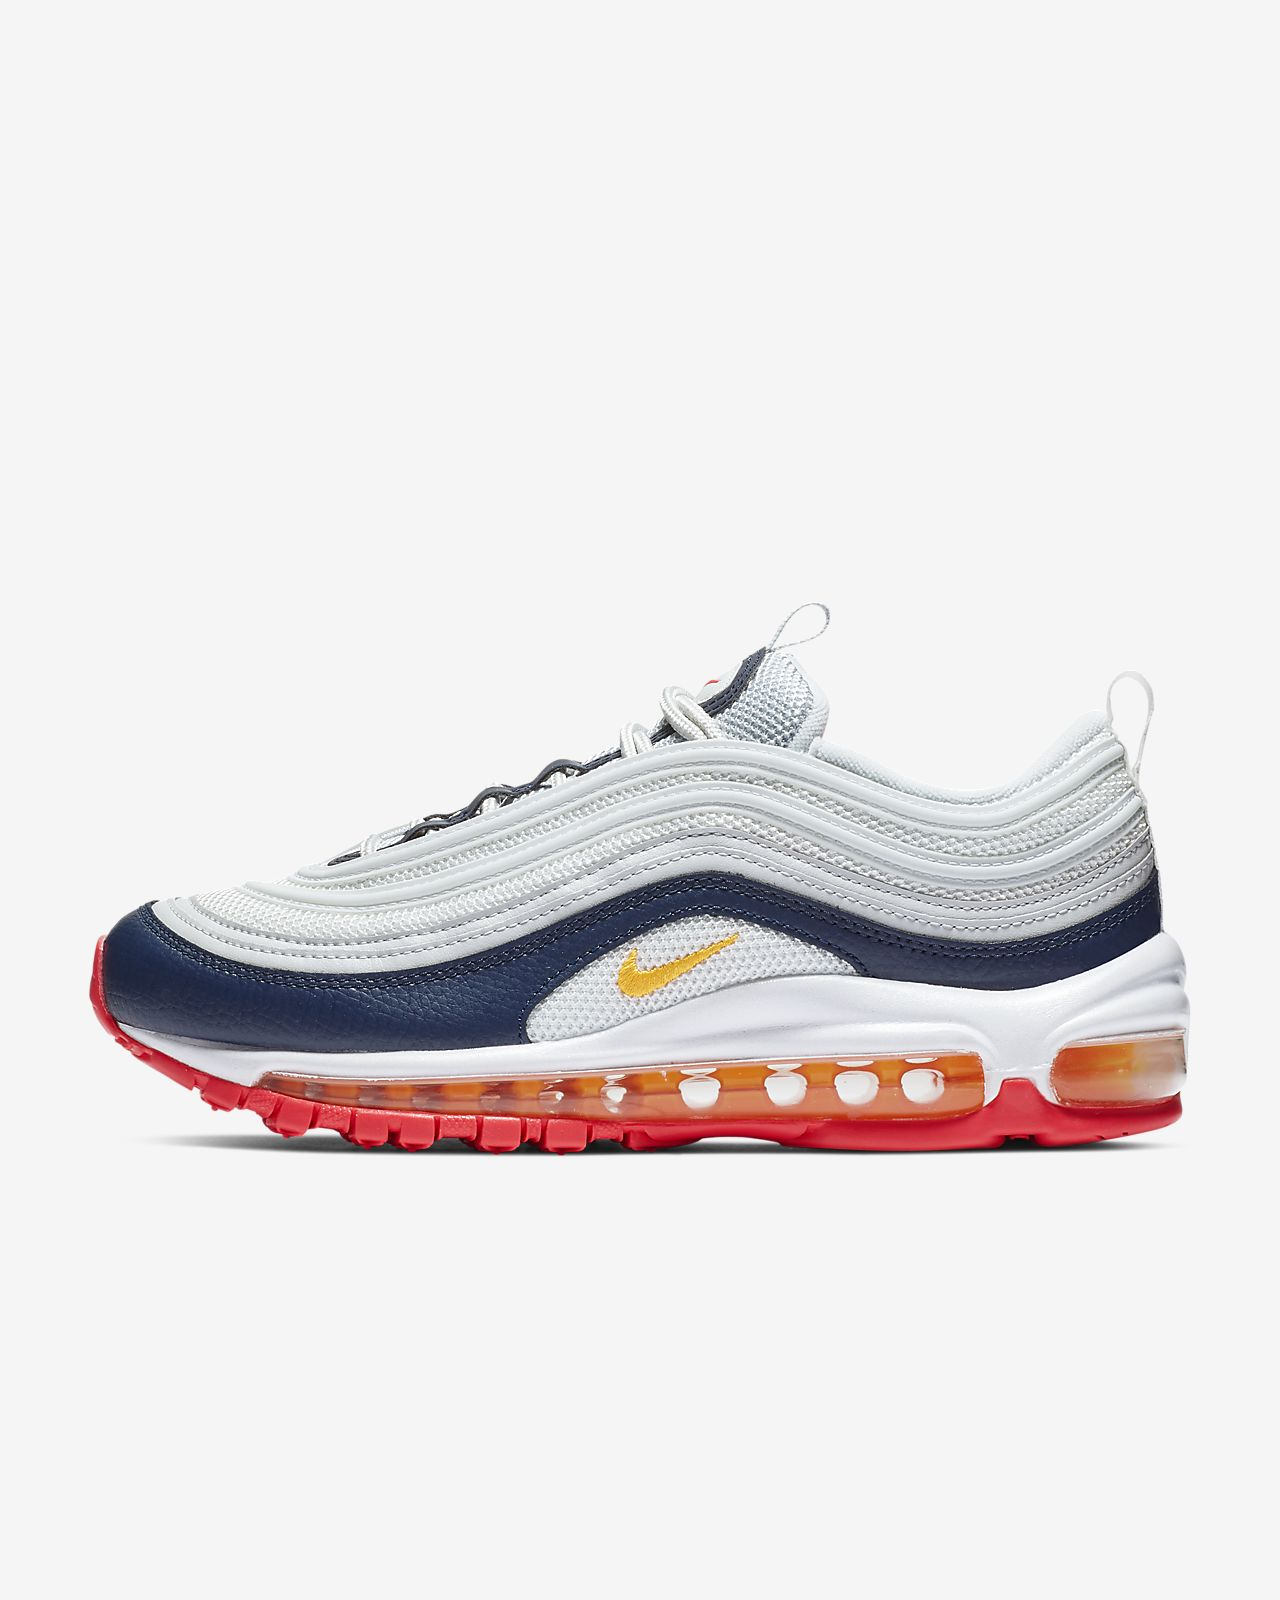 b302956d395 Nike Air Max 97 Premium Women s Shoe. Nike.com GB